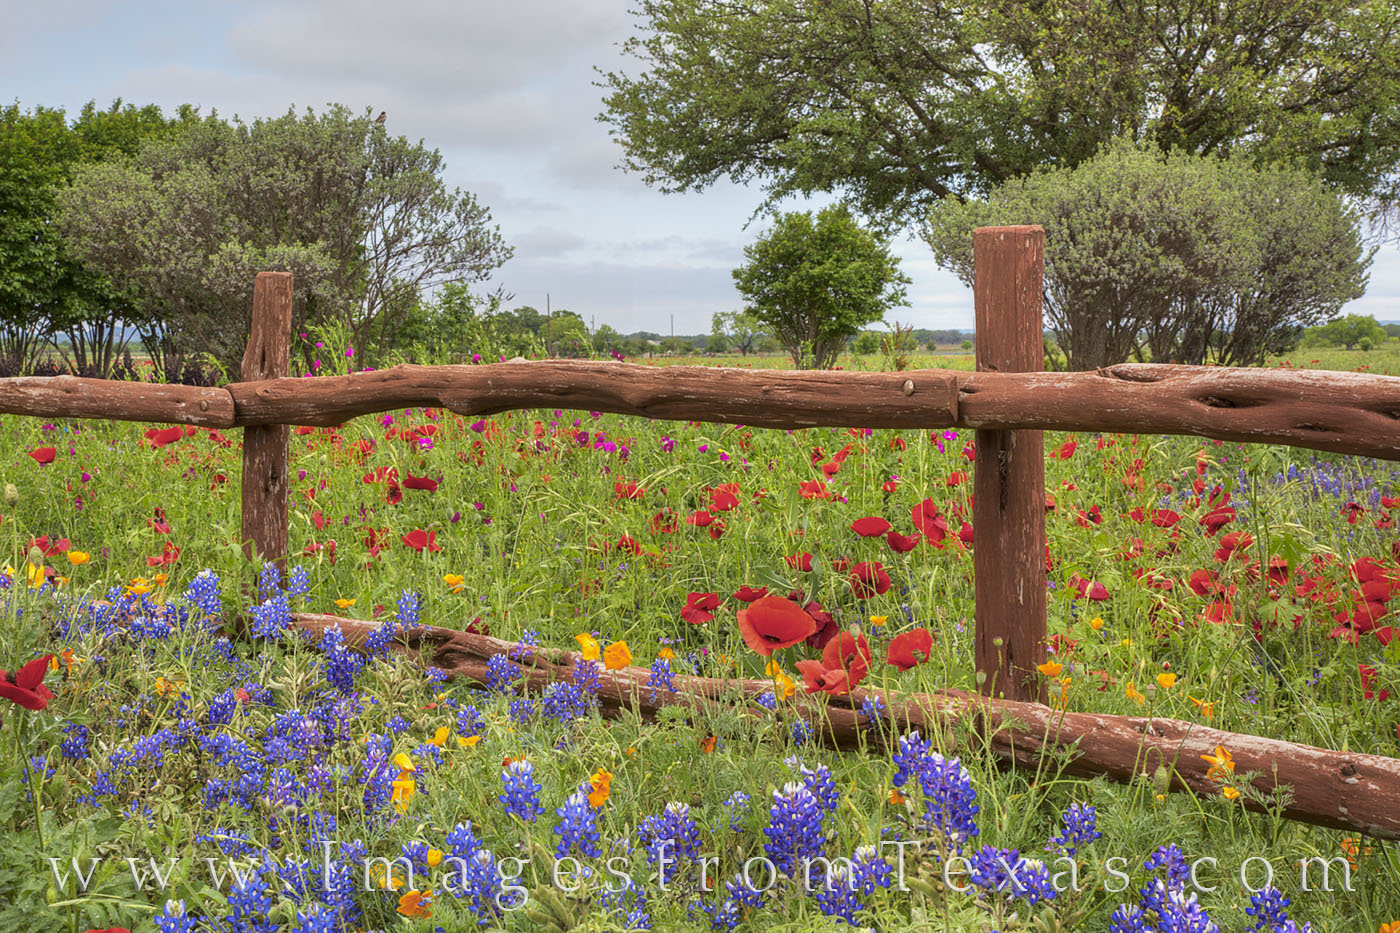 bluebonnet photos,texas wildflower photos,bluebonnet prints,texas hill country,wooden fence, photo